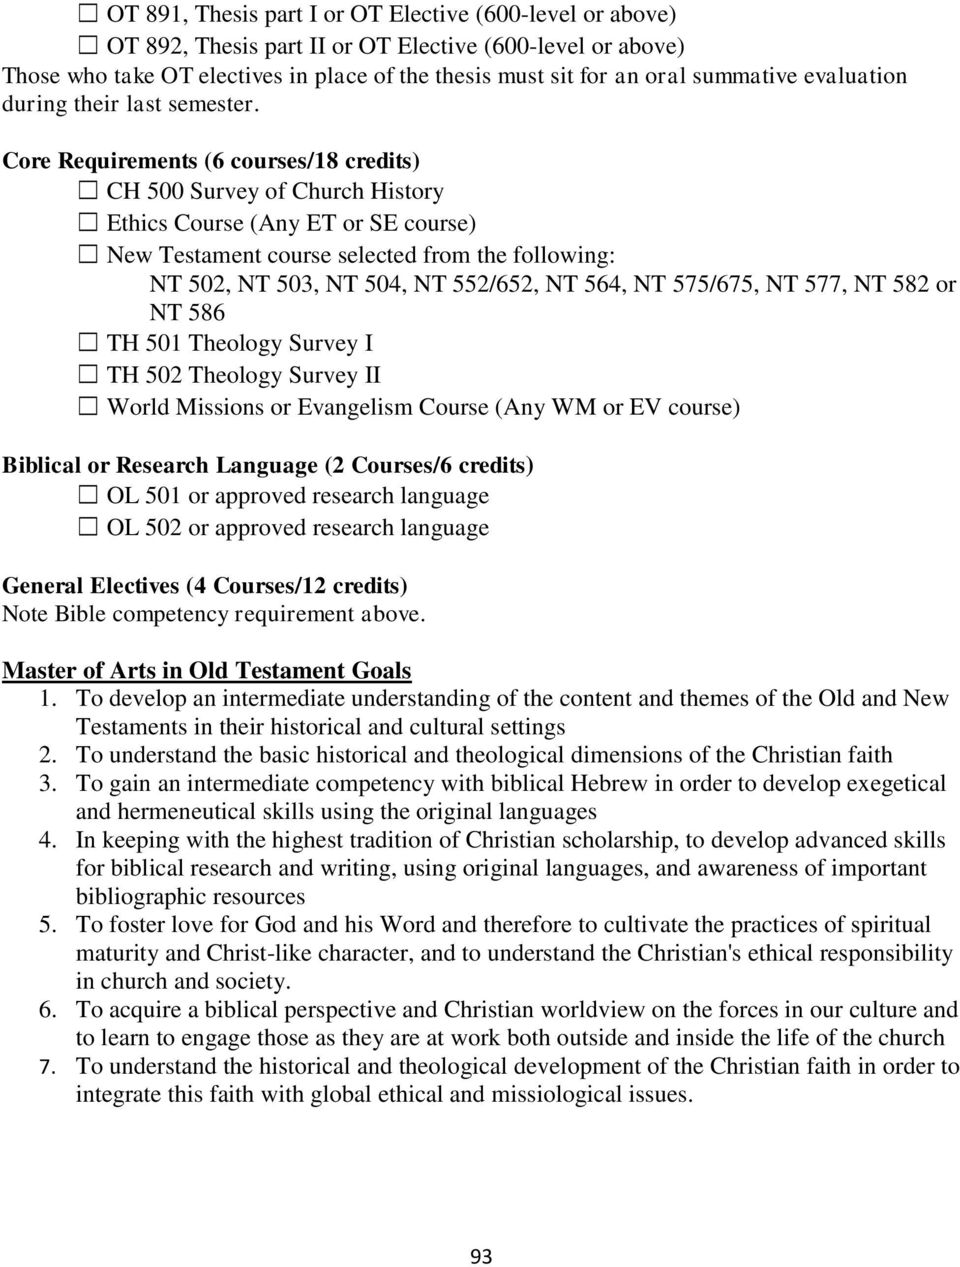 Core Requirements (6 courses/18 credits) CH 500 Survey of Church History Ethics Course (Any ET or SE course) New Testament course selected from the following: NT 502, NT 503, NT 504, NT 552/652, NT